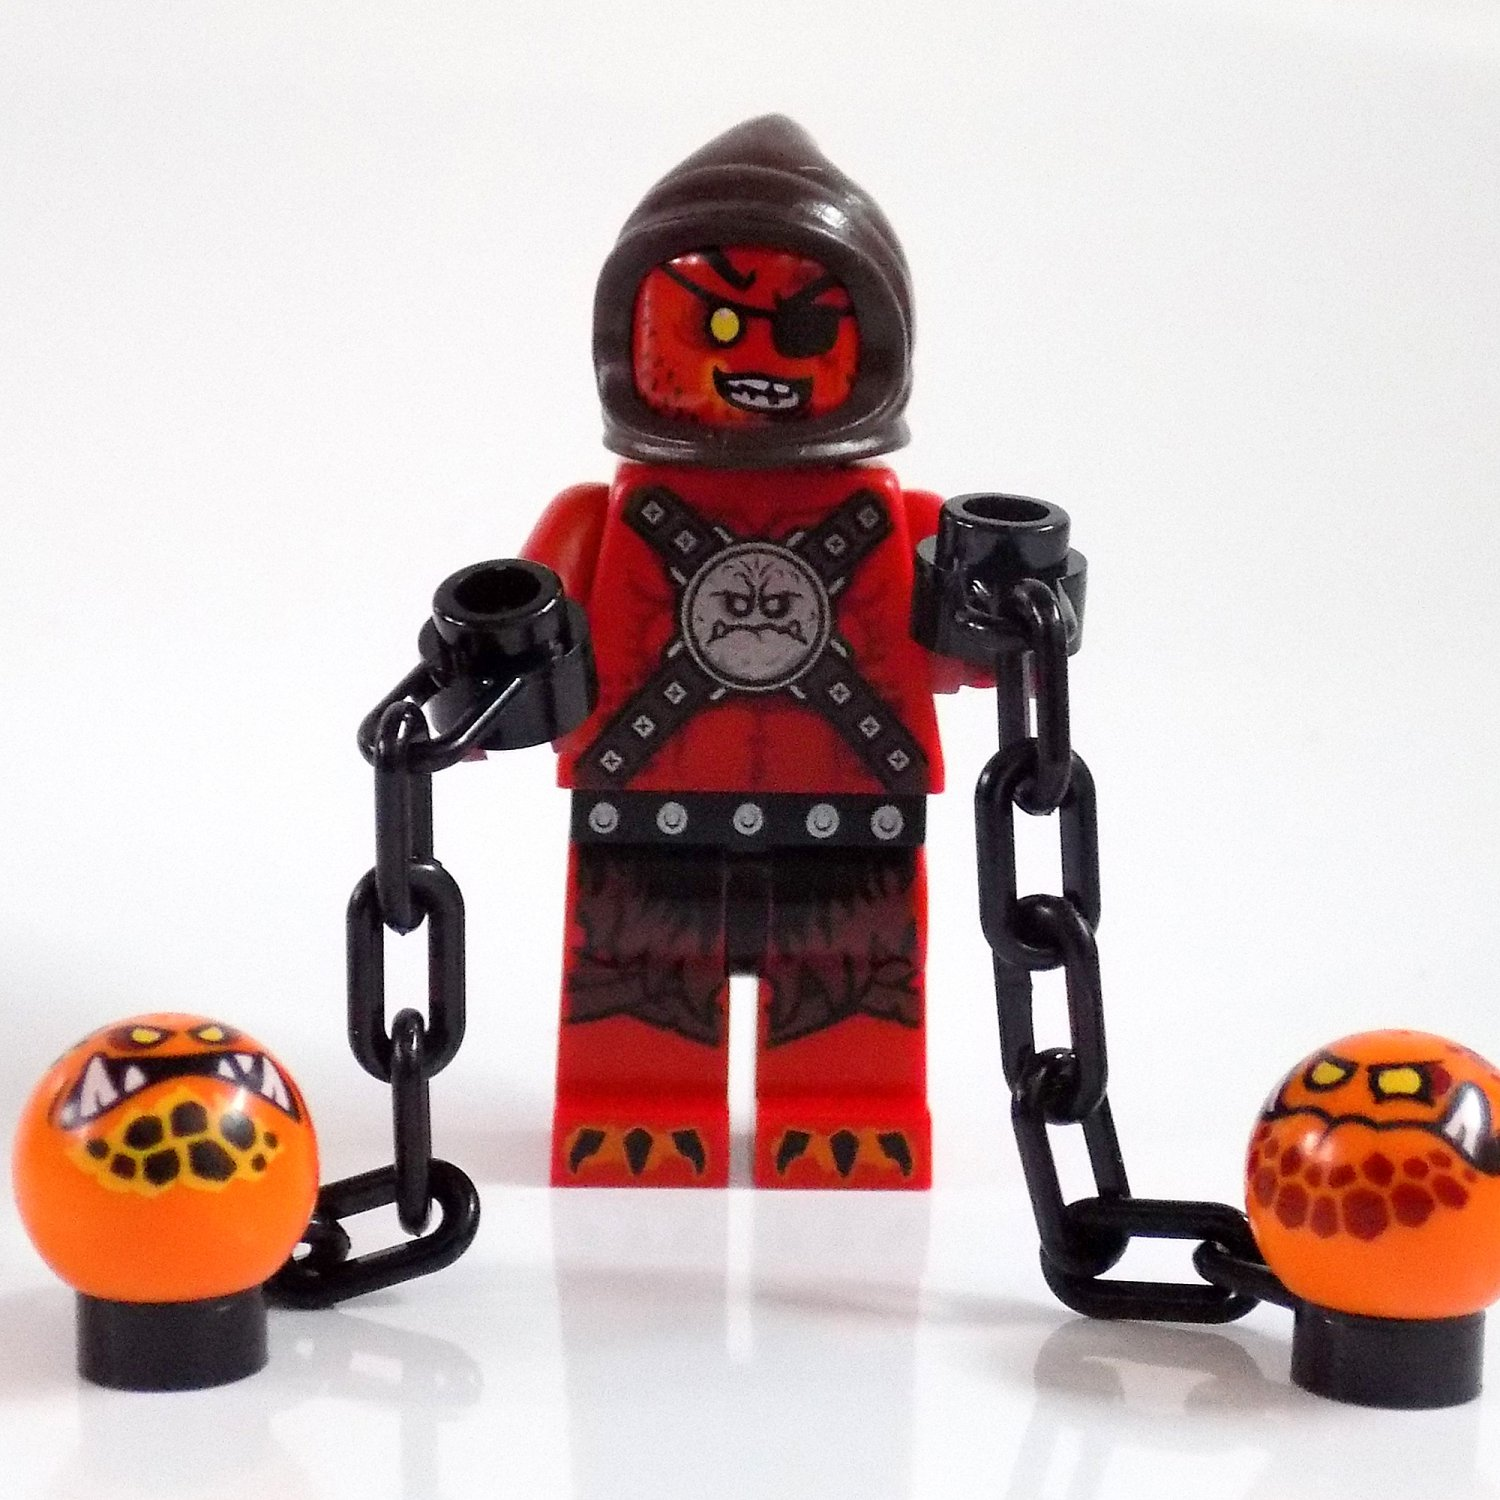 Beast Master Minifigure from Lego Nexo Knights